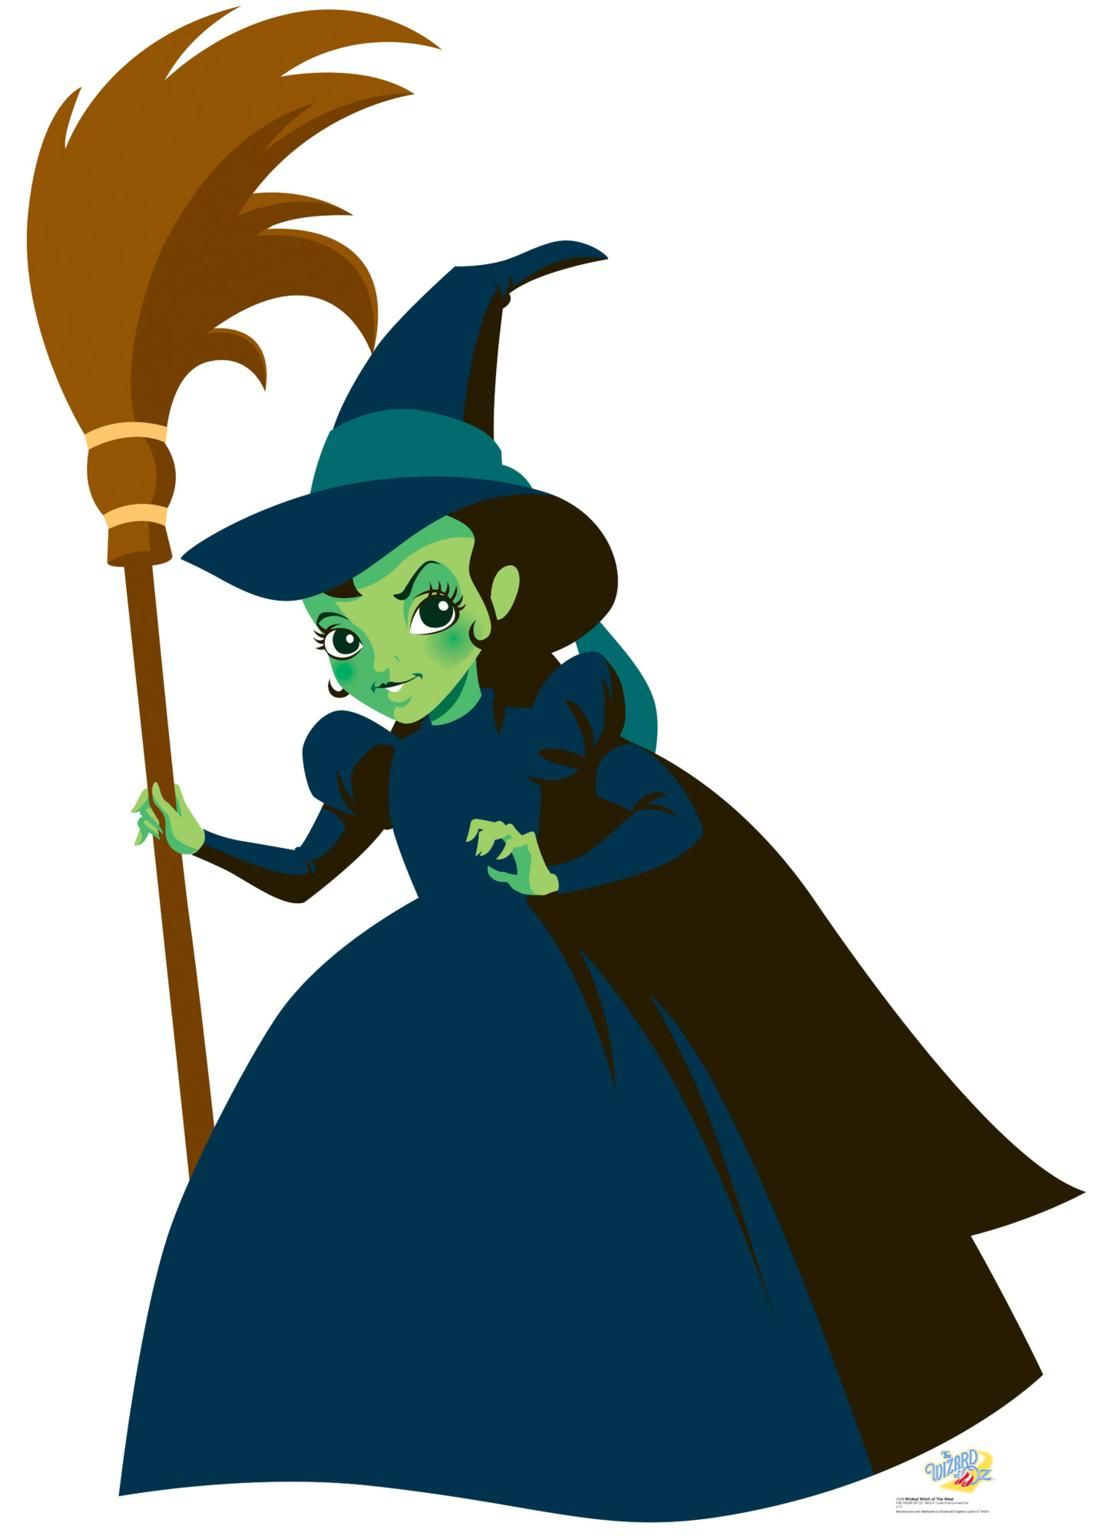 Wizard of oz witch clipart 2.